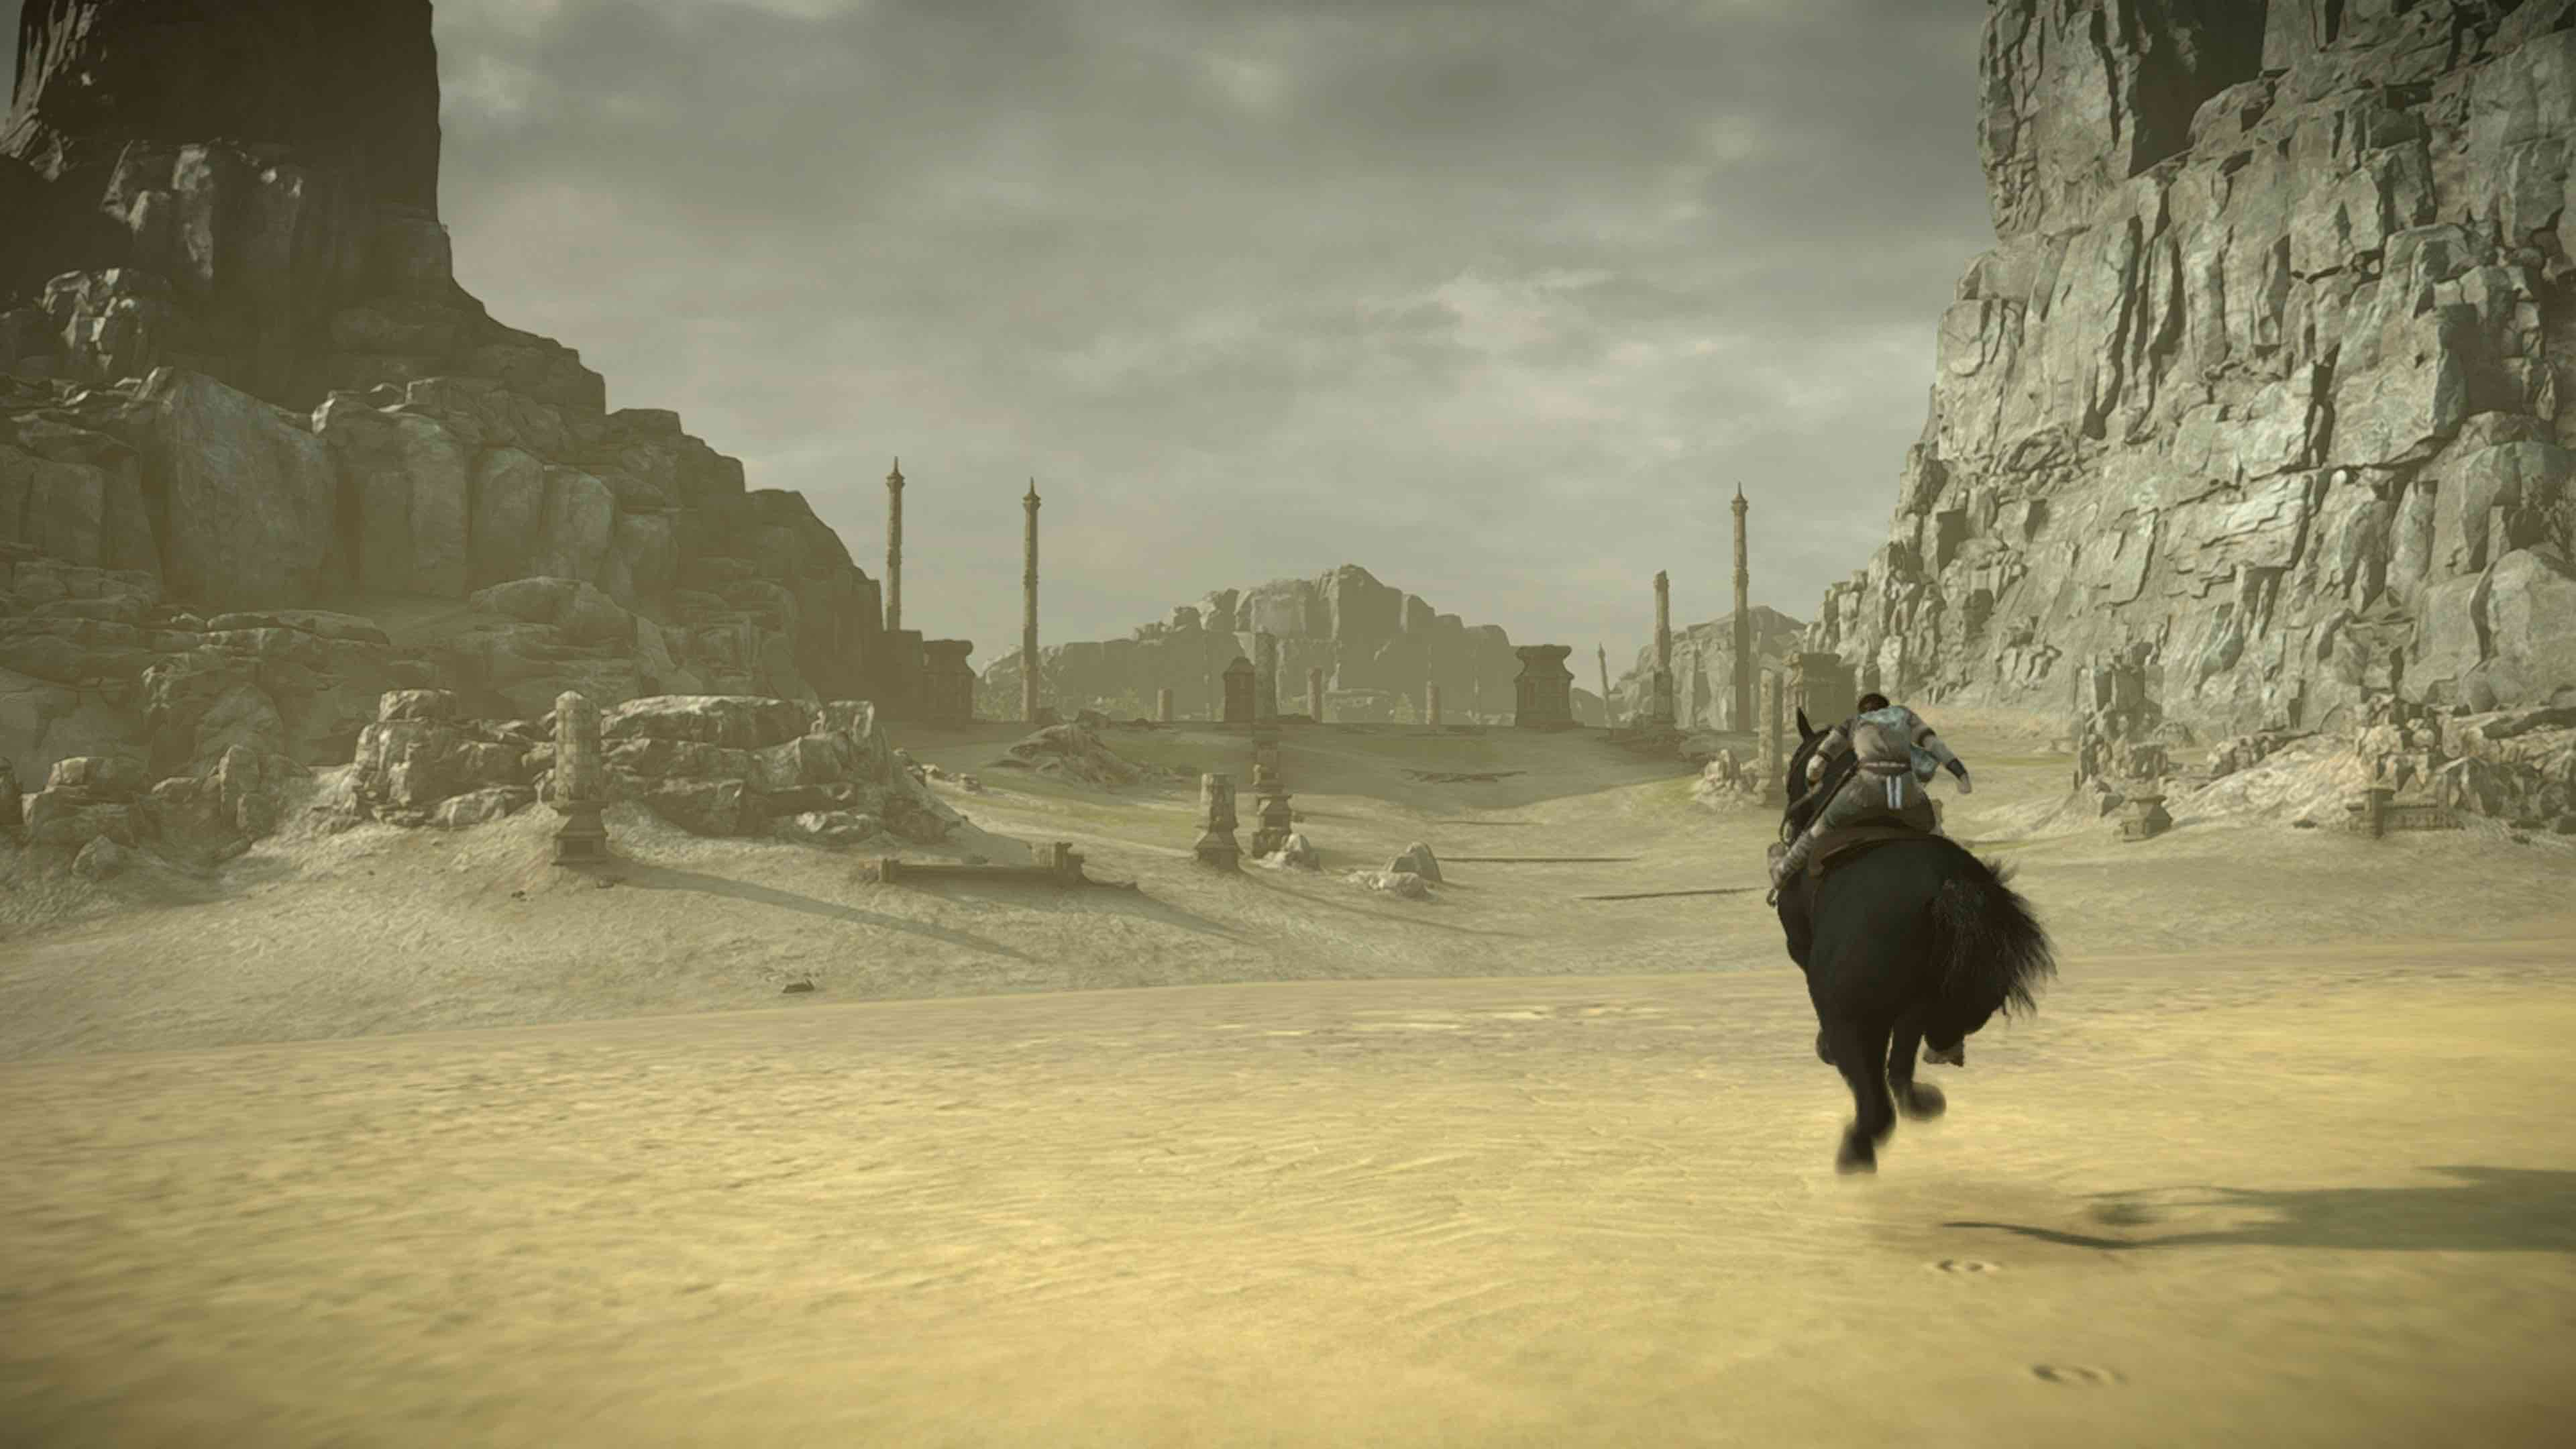 Shadow_of_the_Colossus_Coloso_7_2